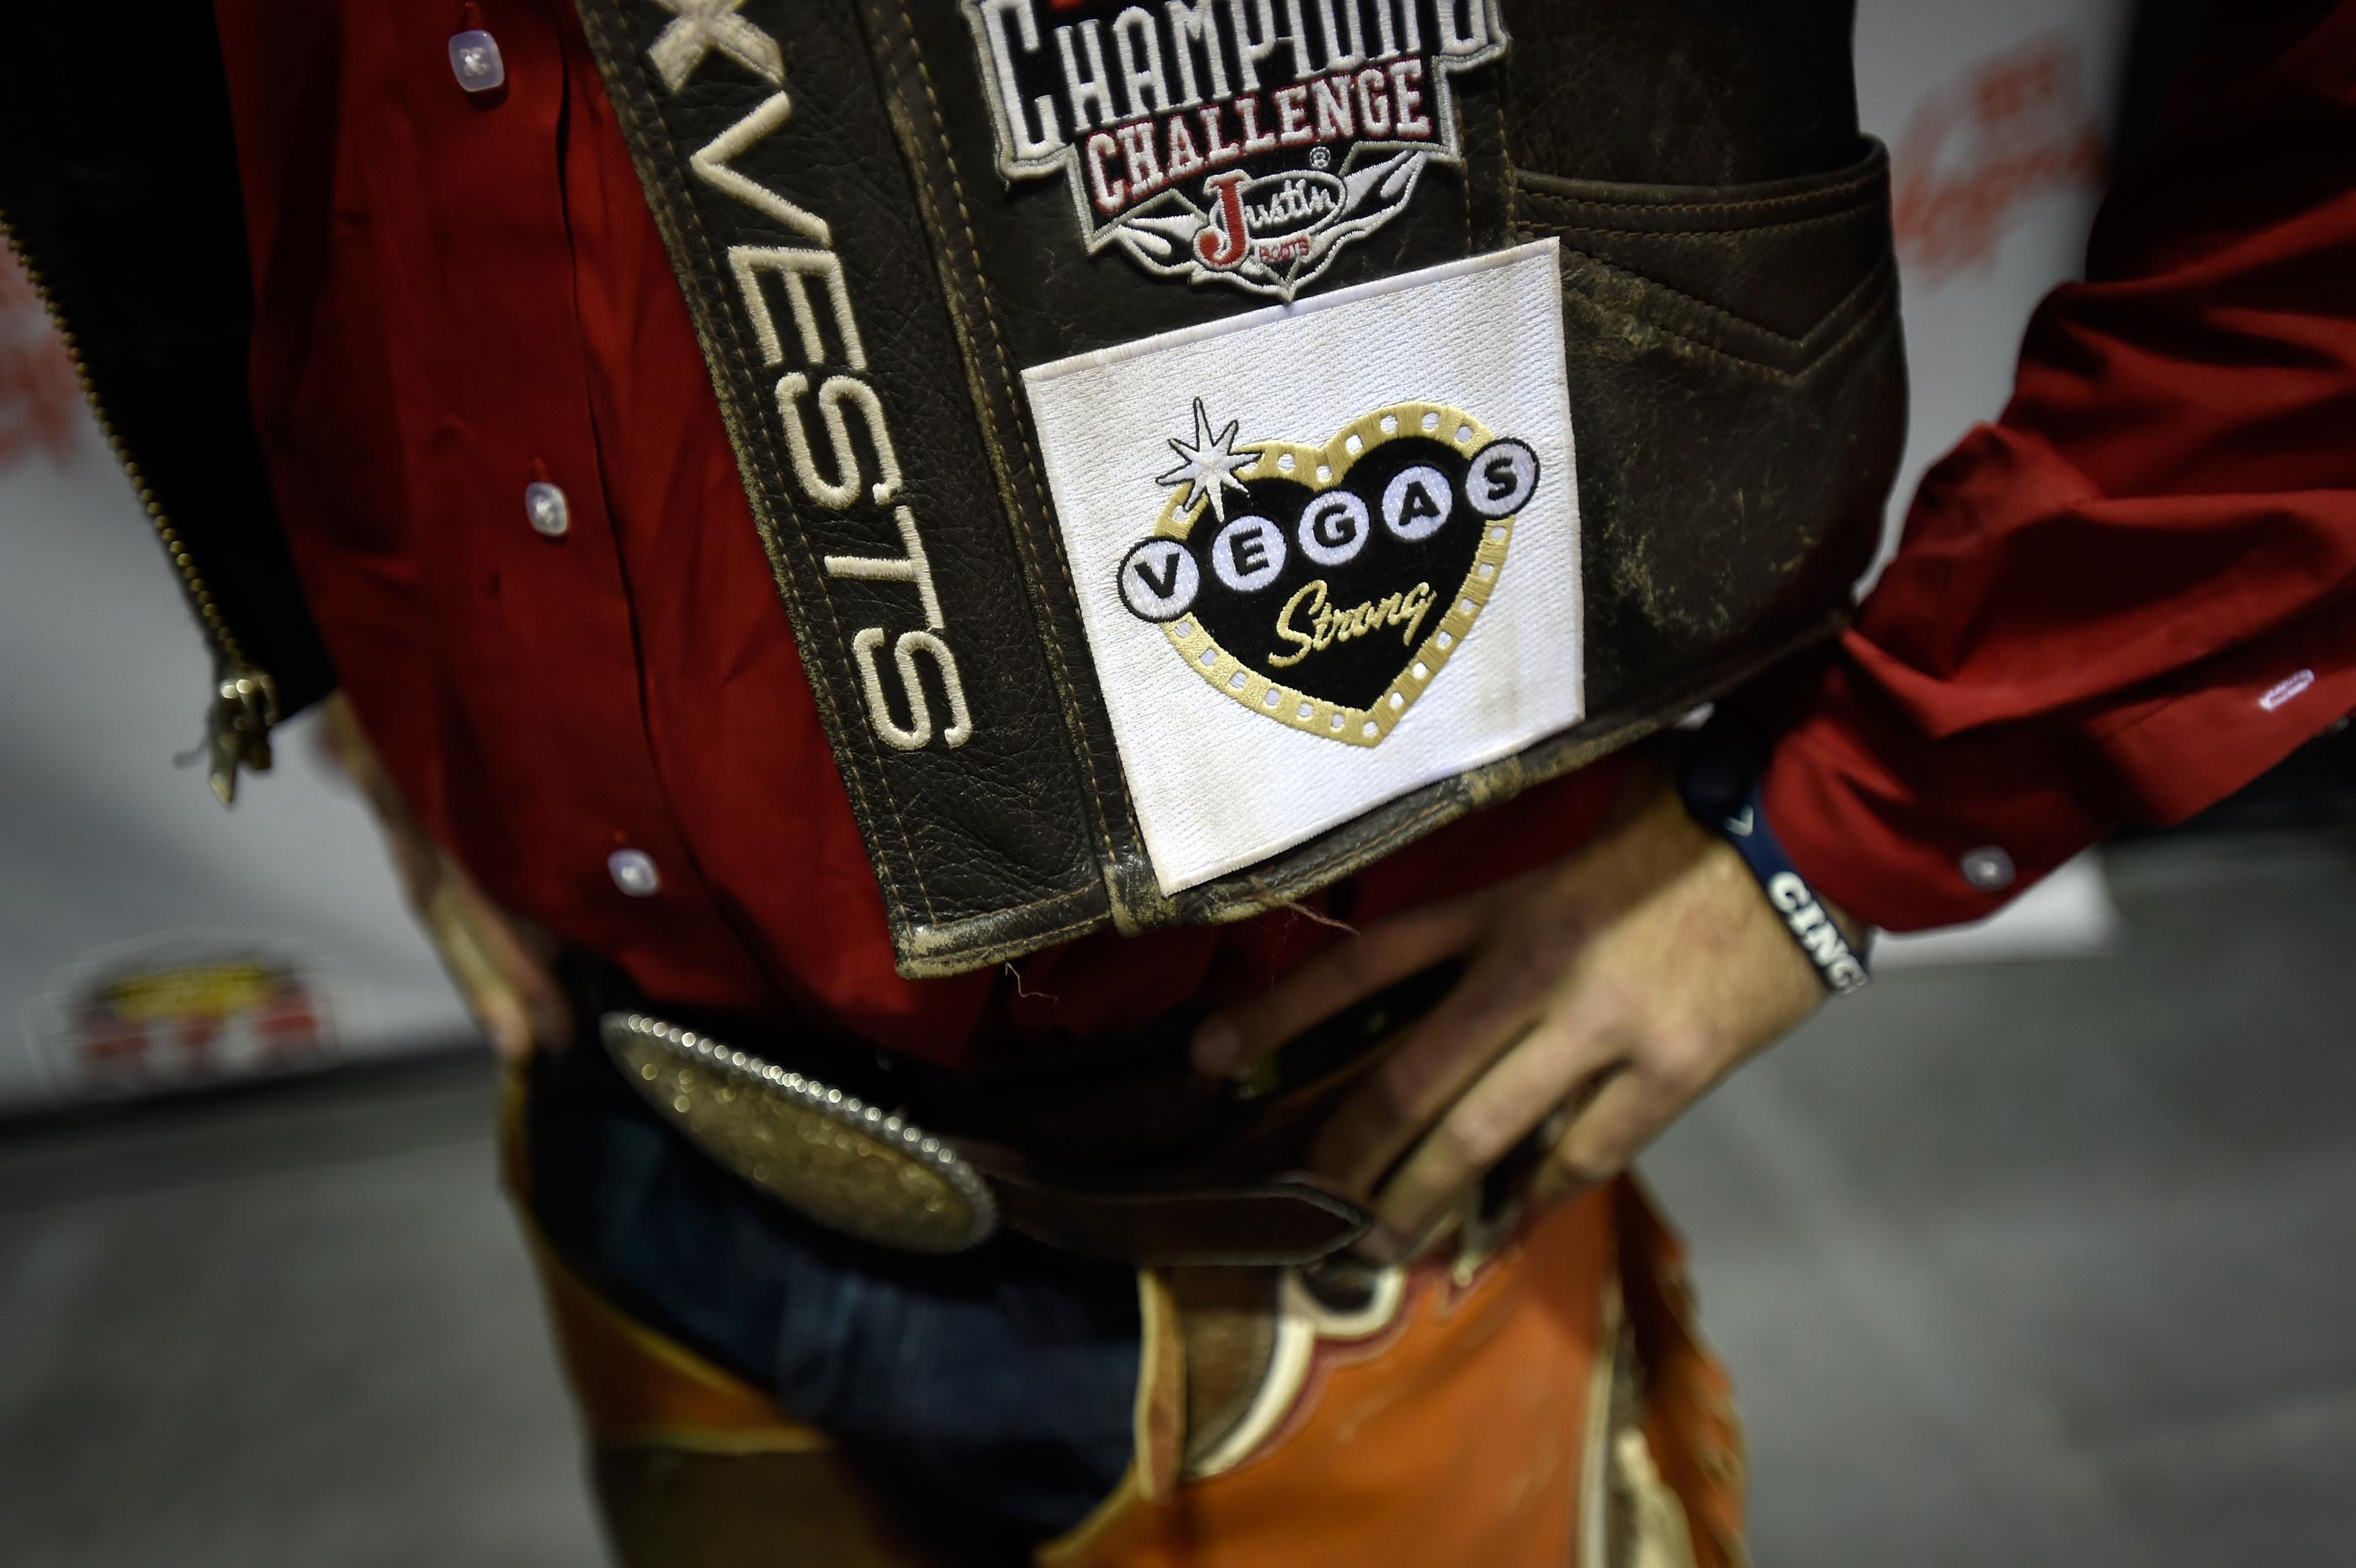 Brody Cress from Hillsdale, Wyoming, displays a Vegas Strong patch on his vest during the seventh go-round of the National Finals Rodeo Wednesday, Dec. 13, 2017, in Las Vegas. CREDIT: David Becker/Las Vegas News Bureau